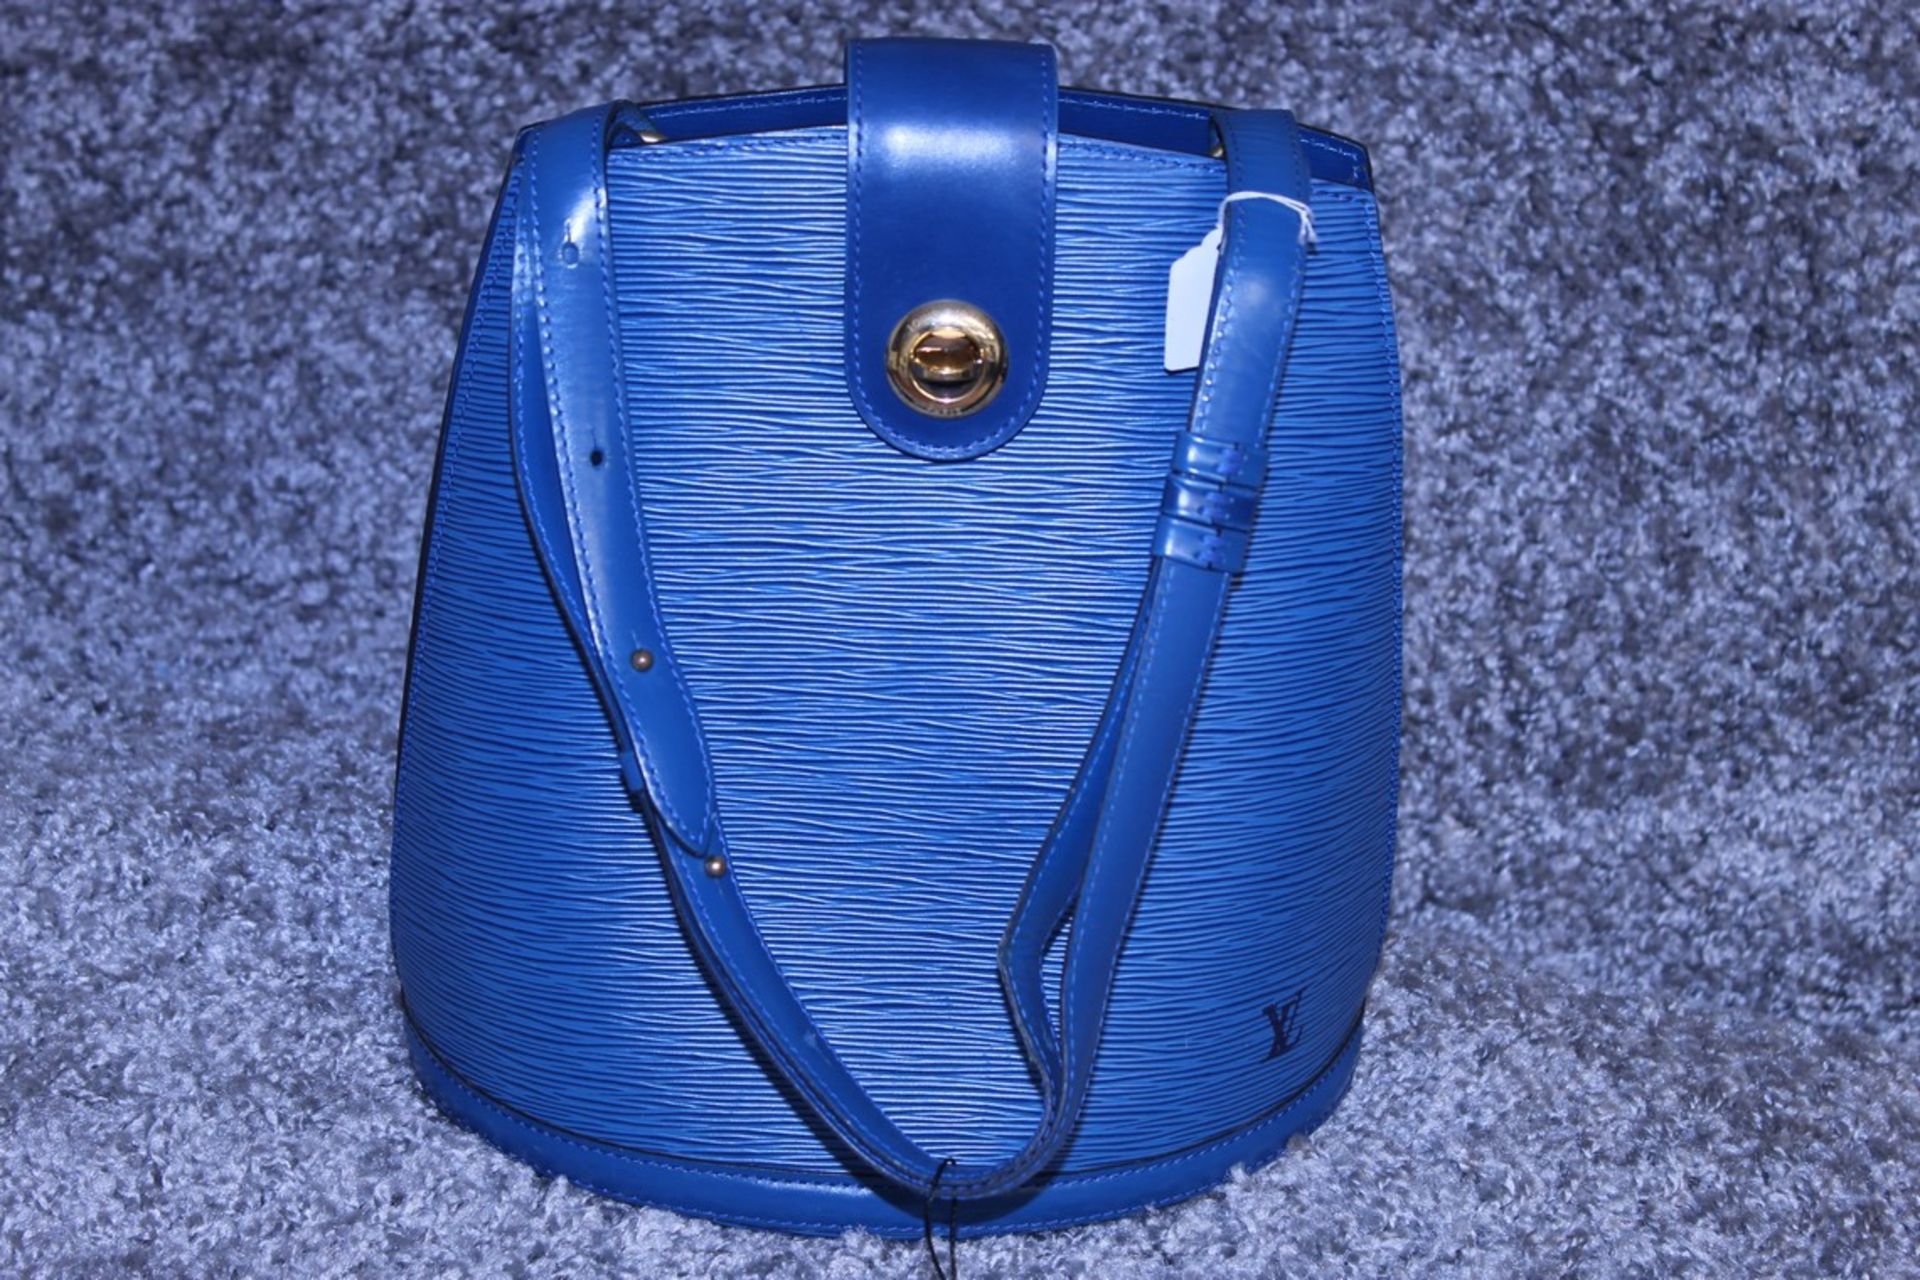 RRP £1,500 Louis Vuitton Cluny Blue Calf Leather Shoulder Bag With Blue Leather Handles, - Image 2 of 3